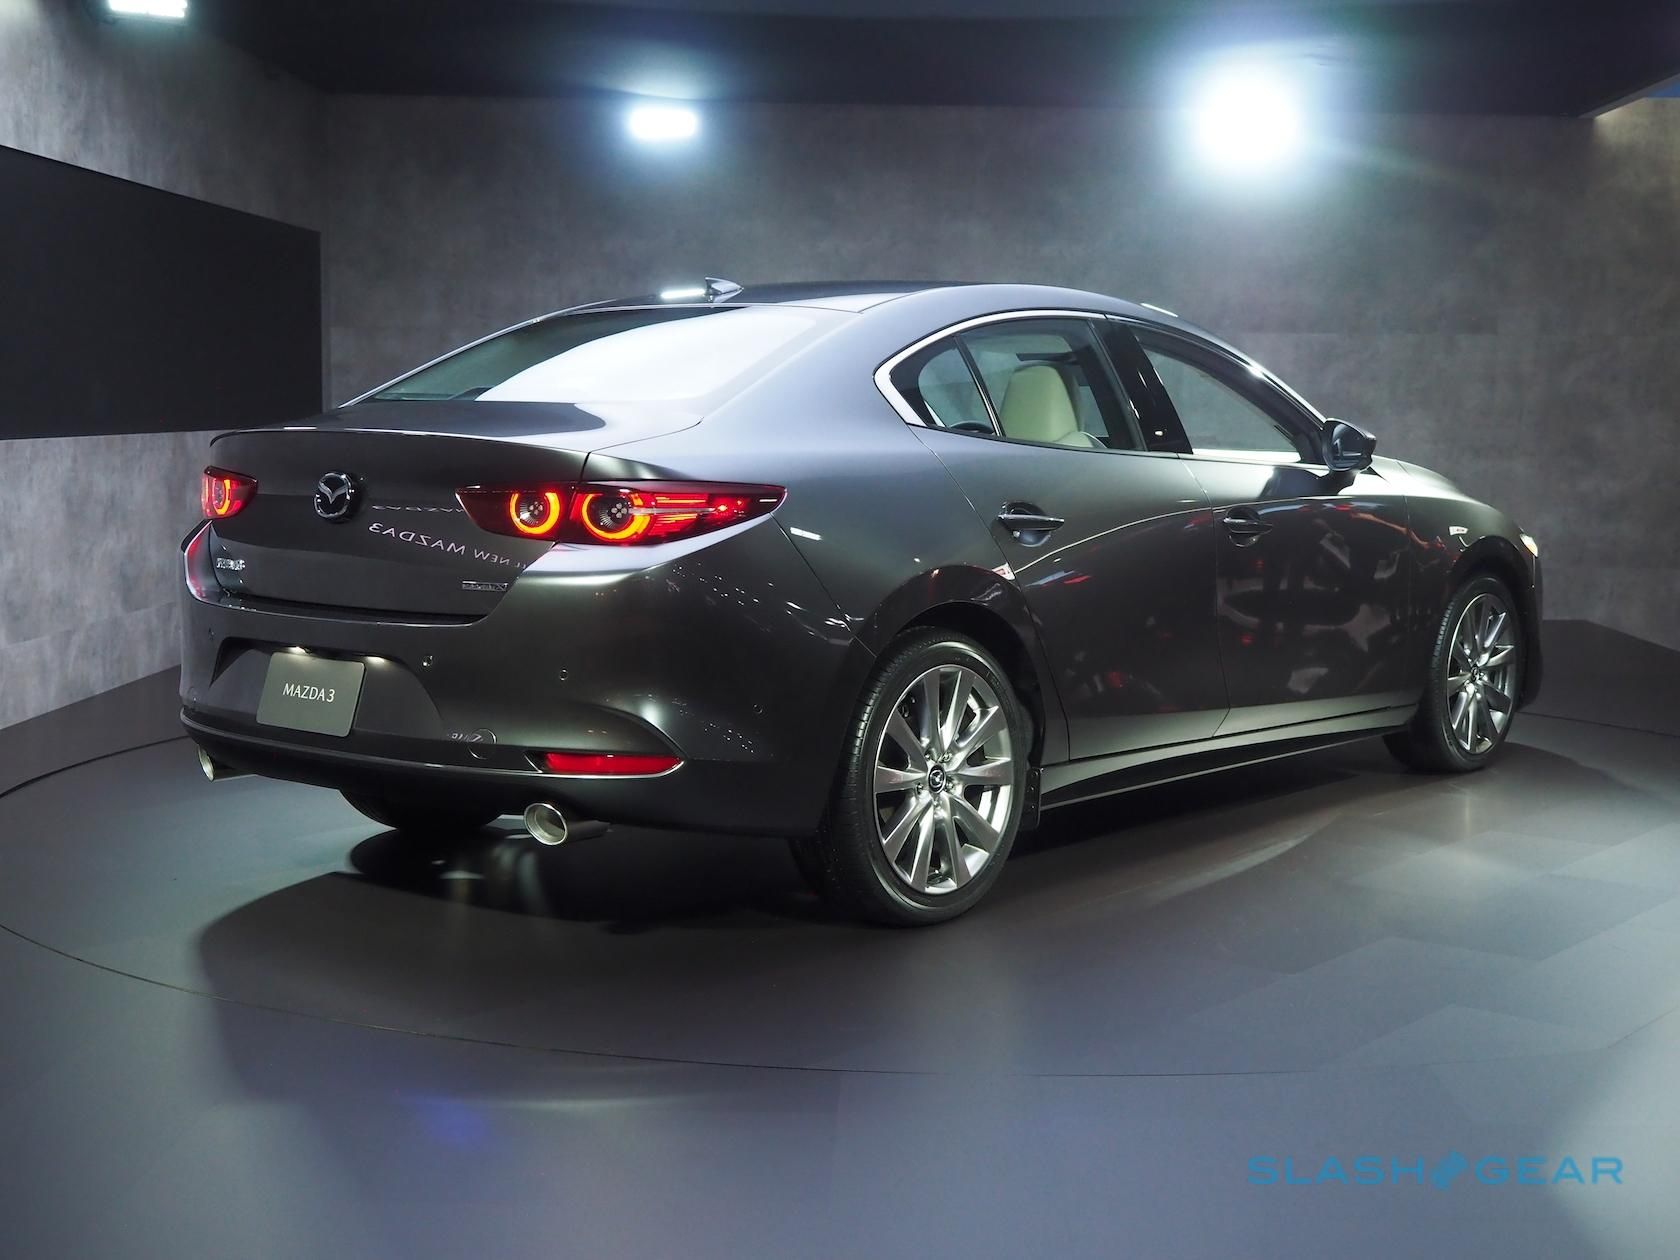 86 All New 2020 Mazda 3 Research New